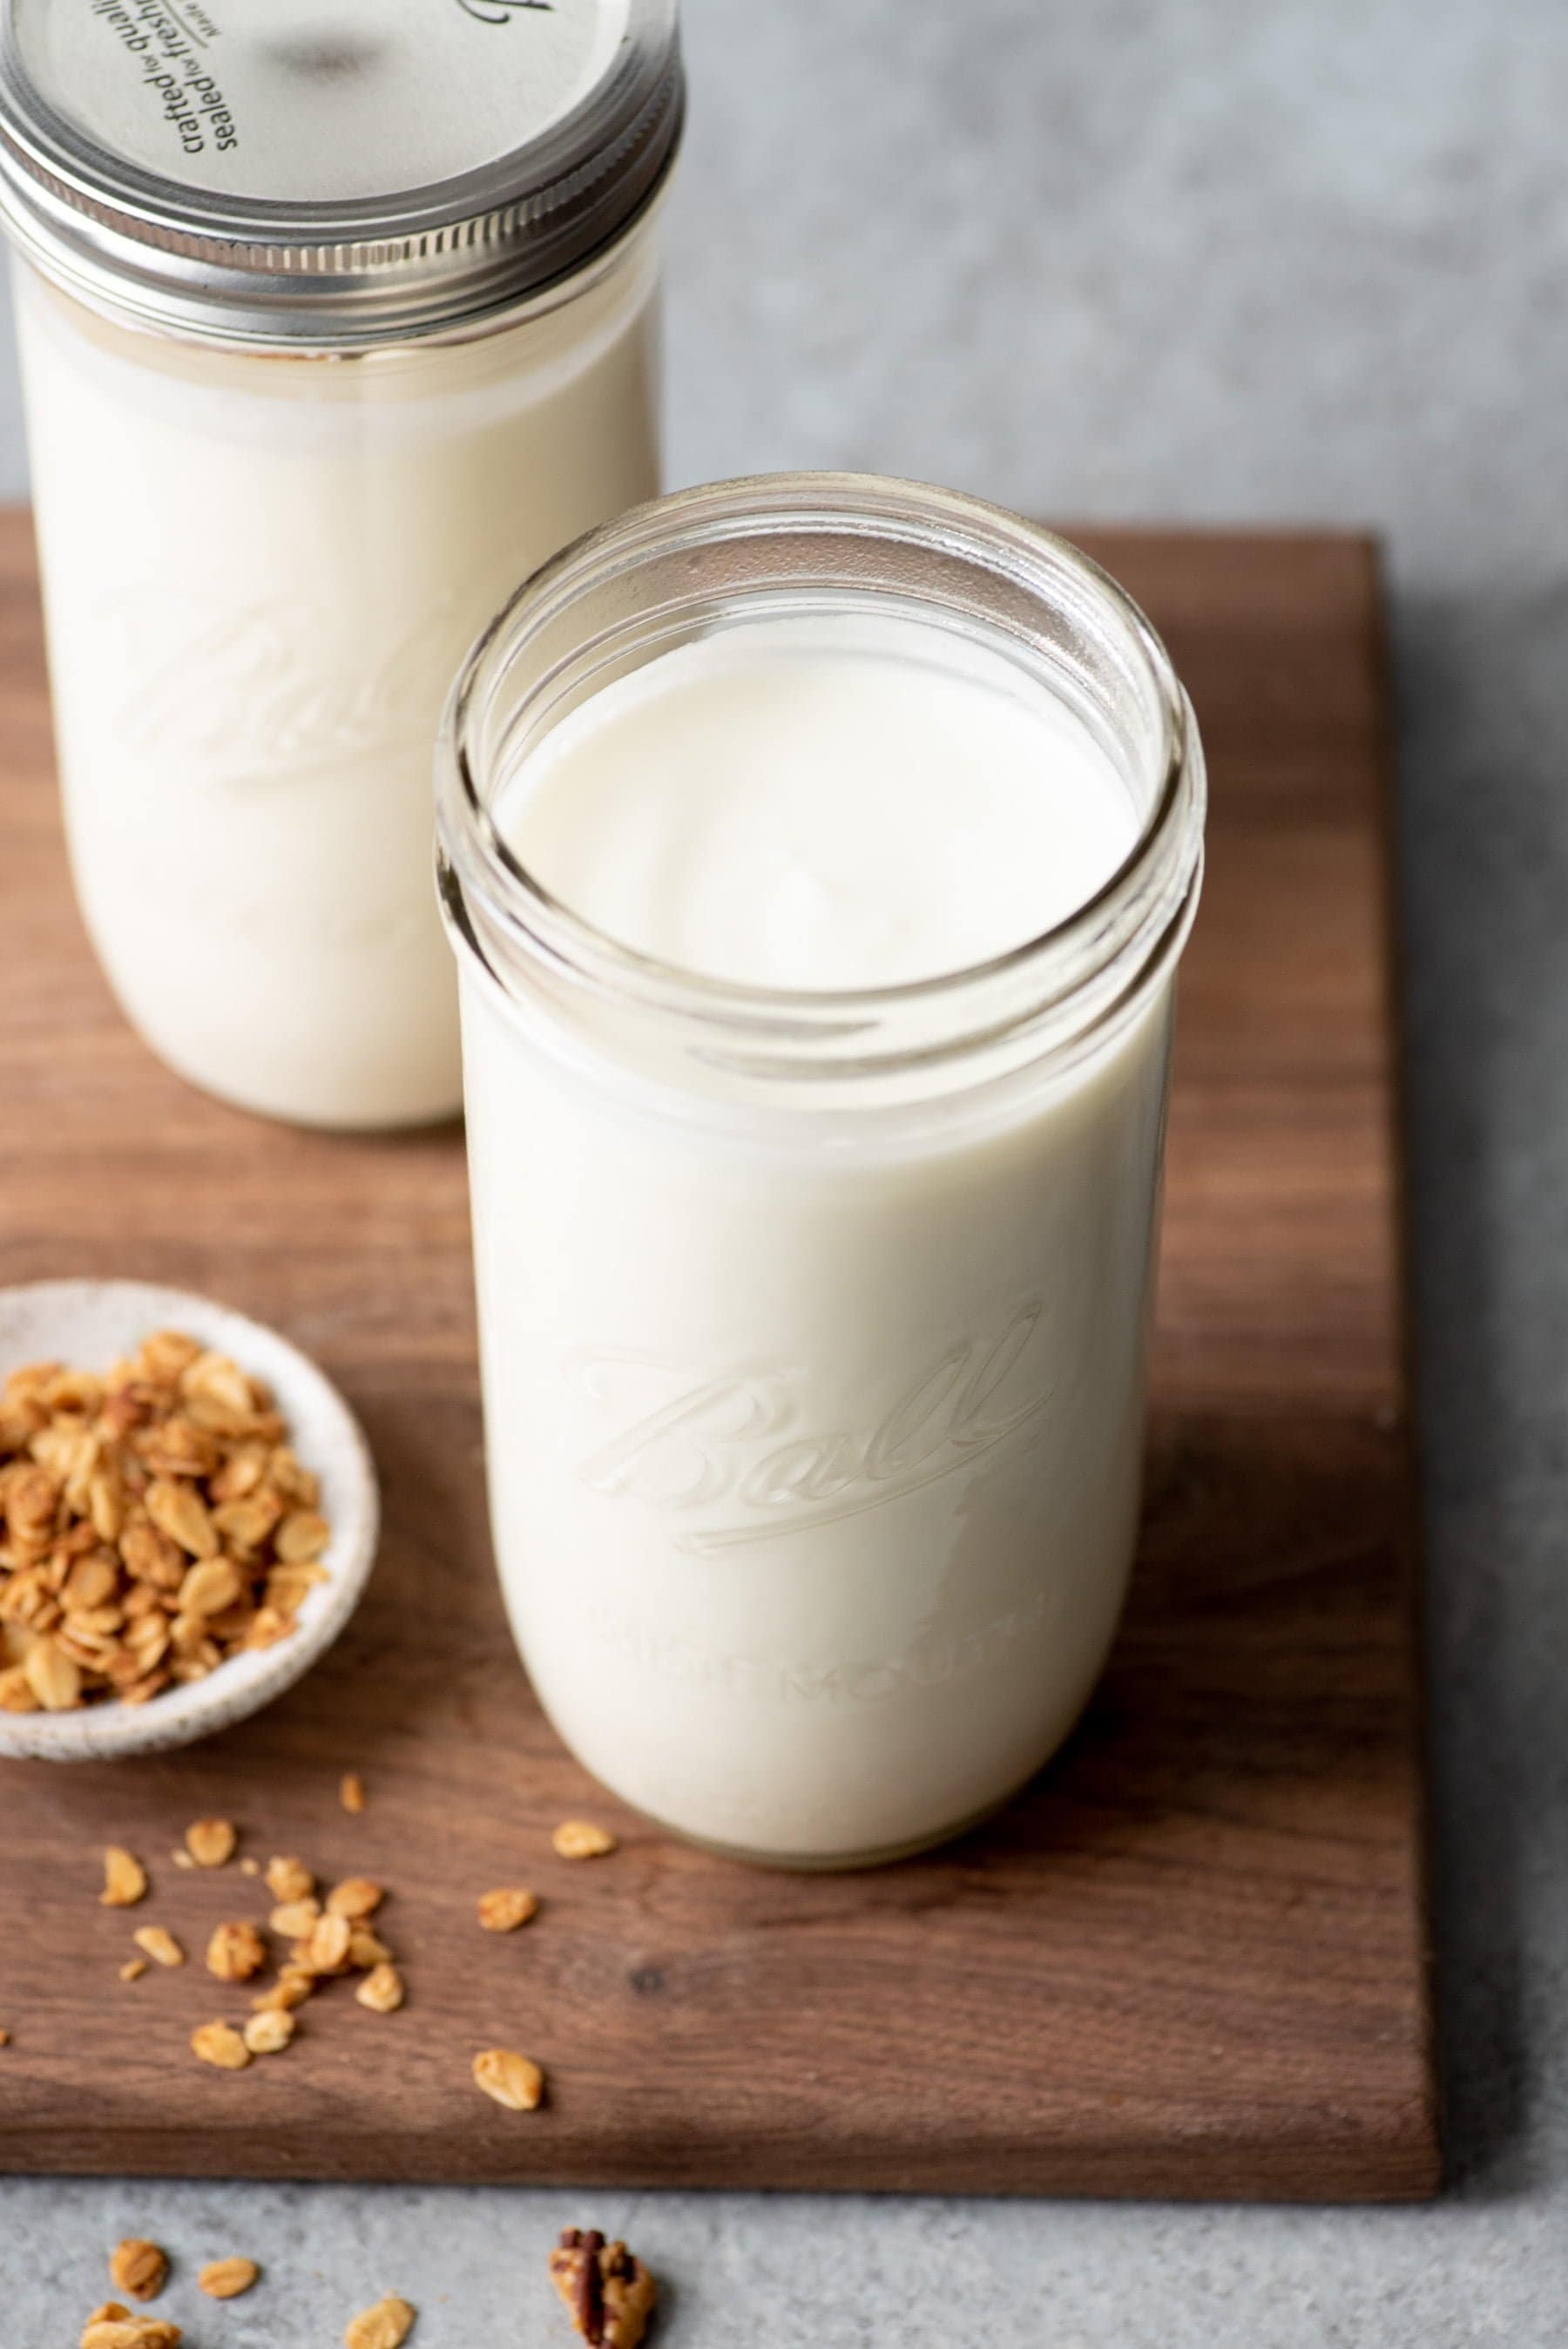 Tall glass jars filled with homemade yogurt, on a dark wooden cutting board